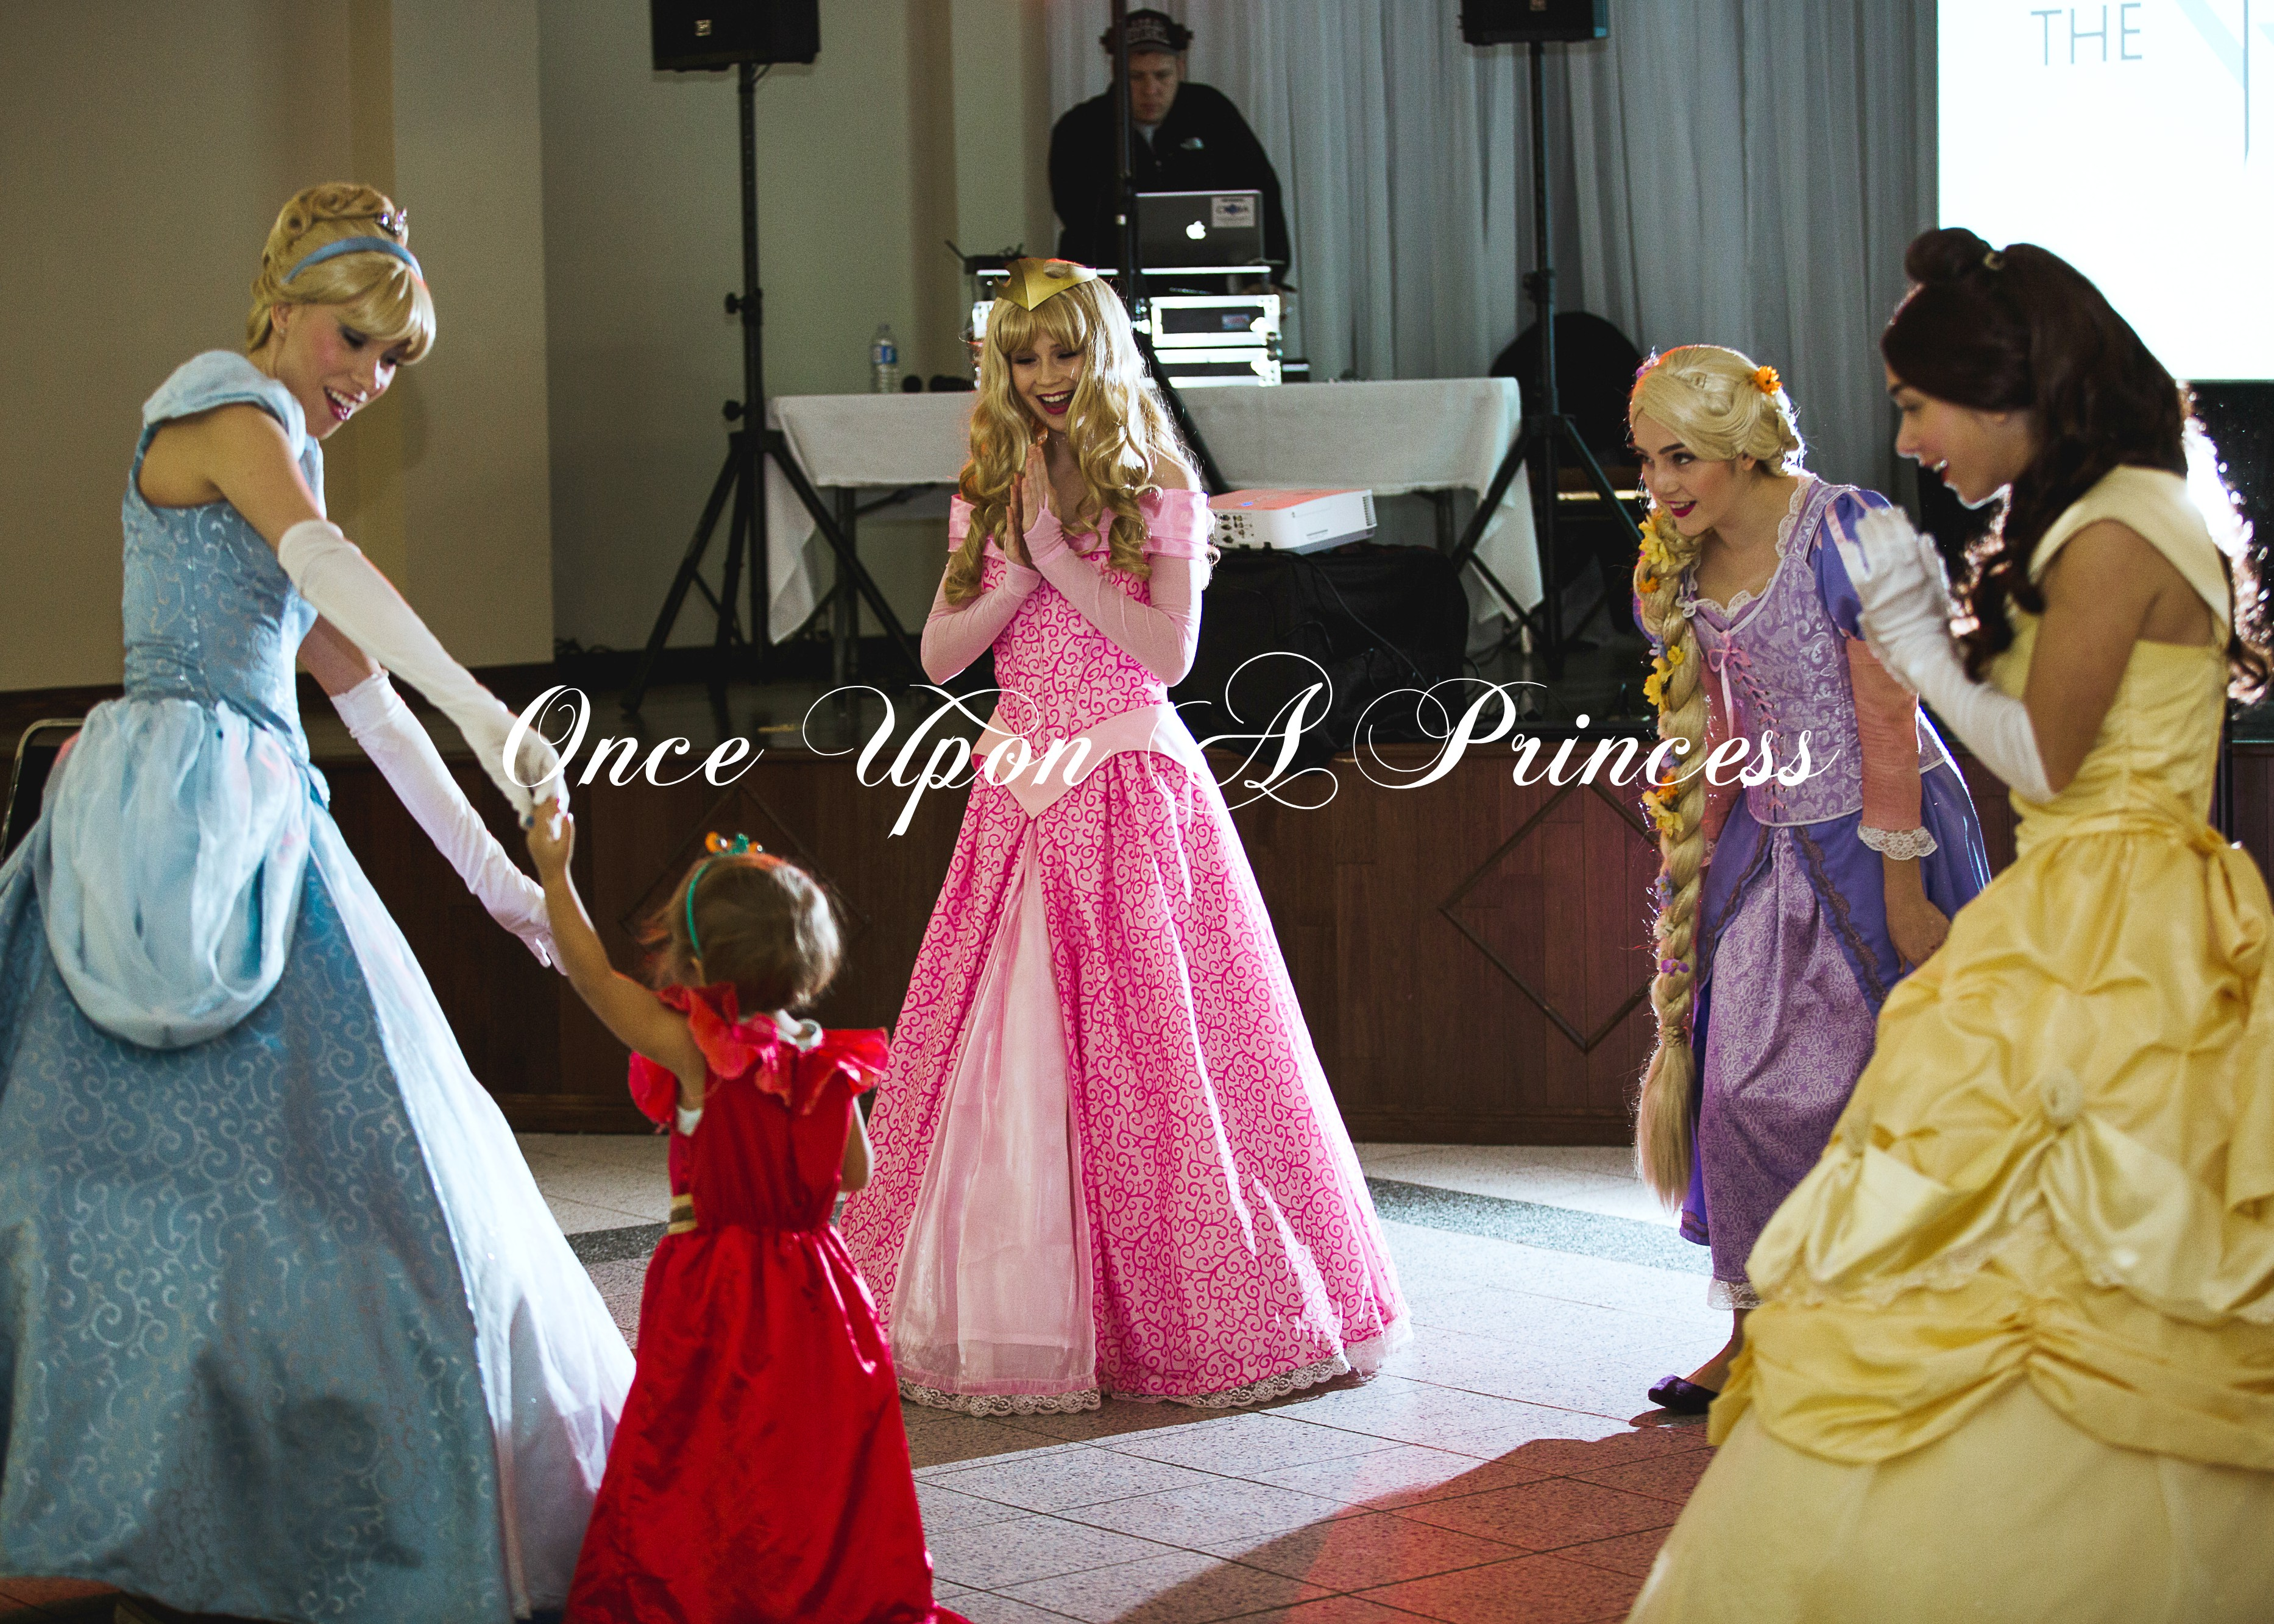 Dance Party Group Once Upon A Princess